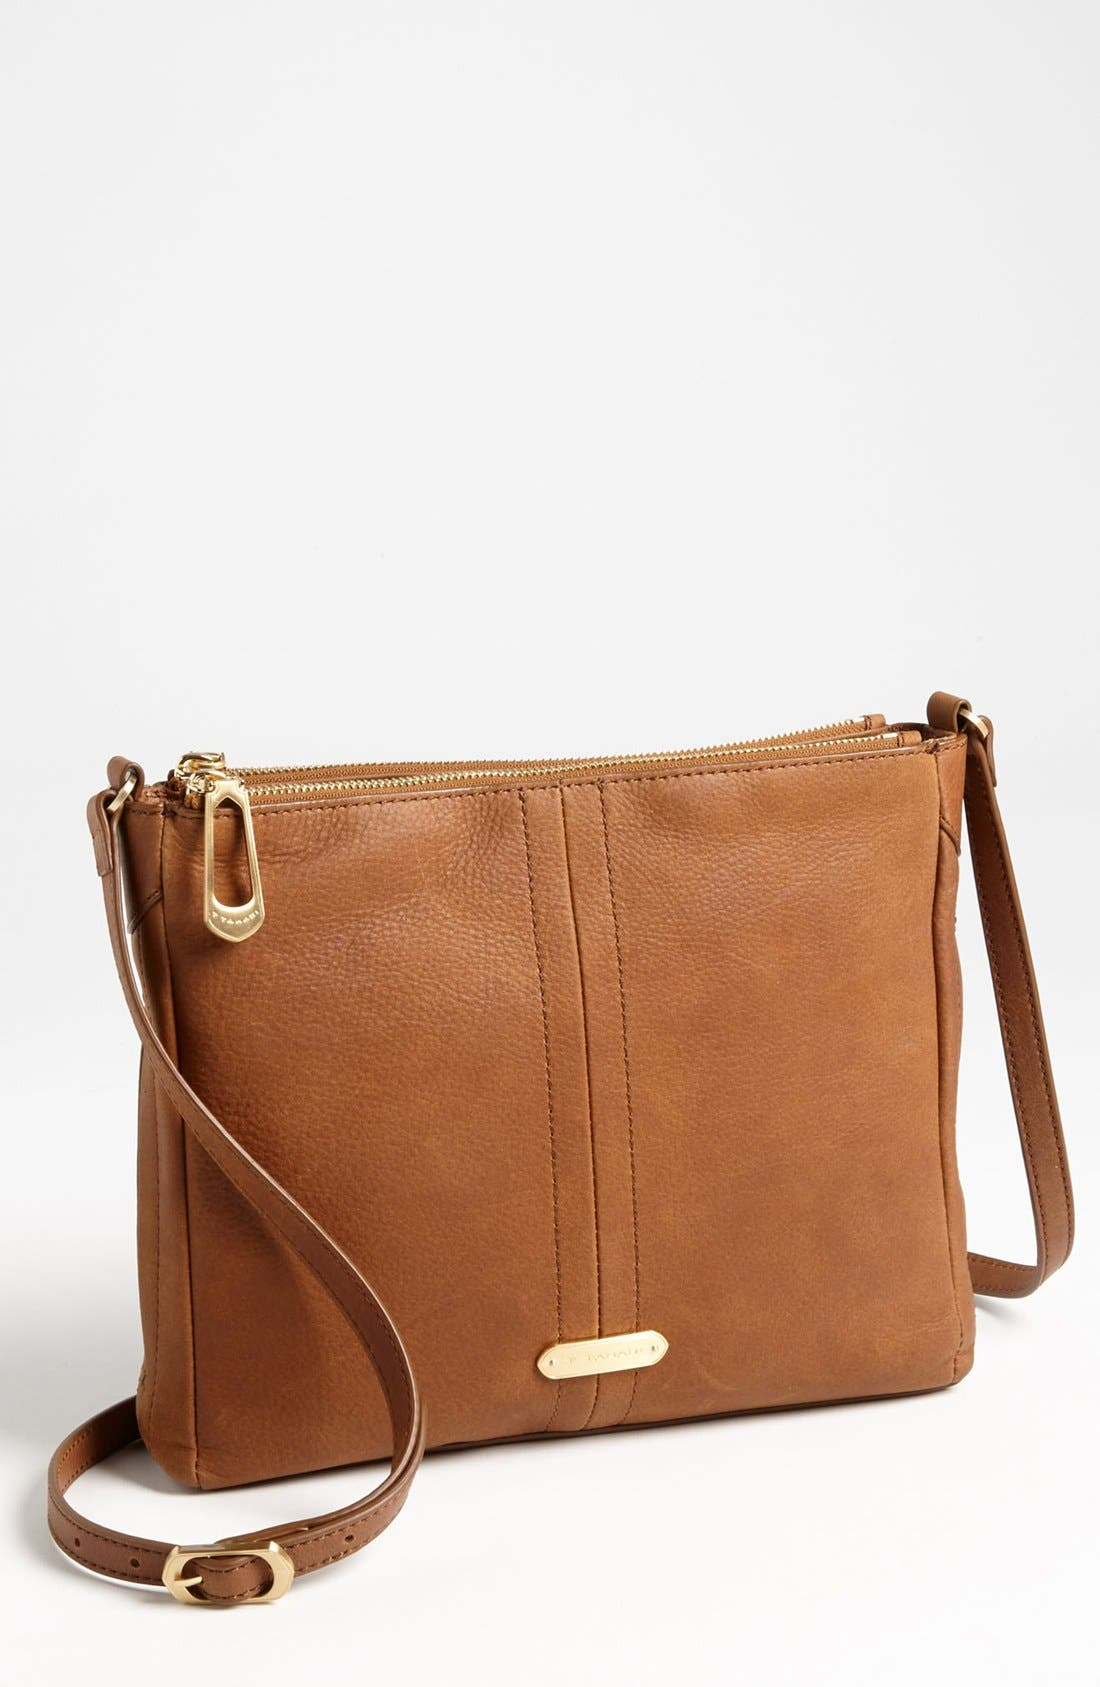 Main Image - T Tahari Pleated Double Zip Leather Crossbody Bag